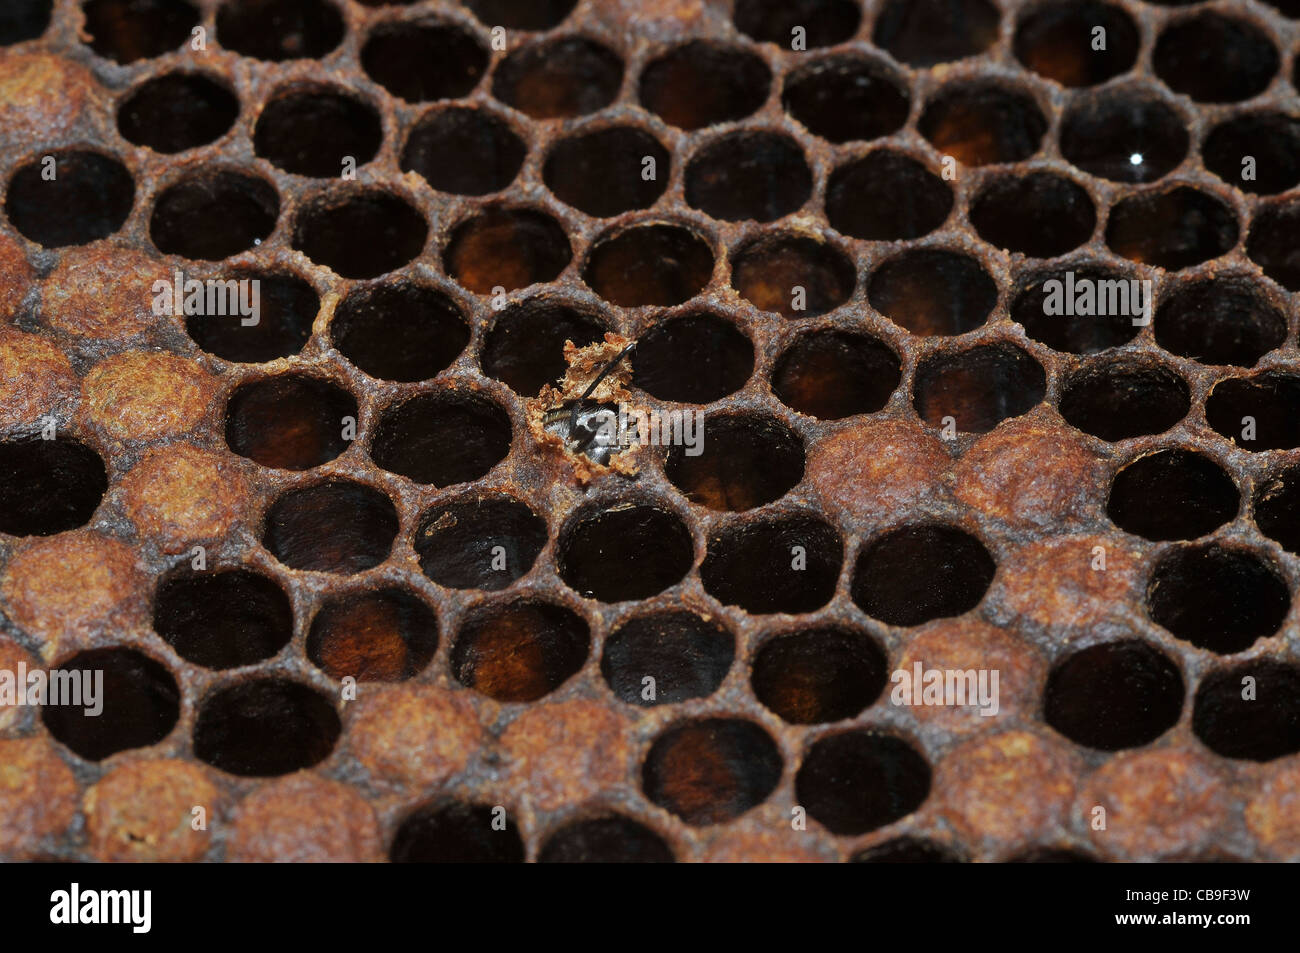 honeybee emerges from a Honeycomb - Stock Image